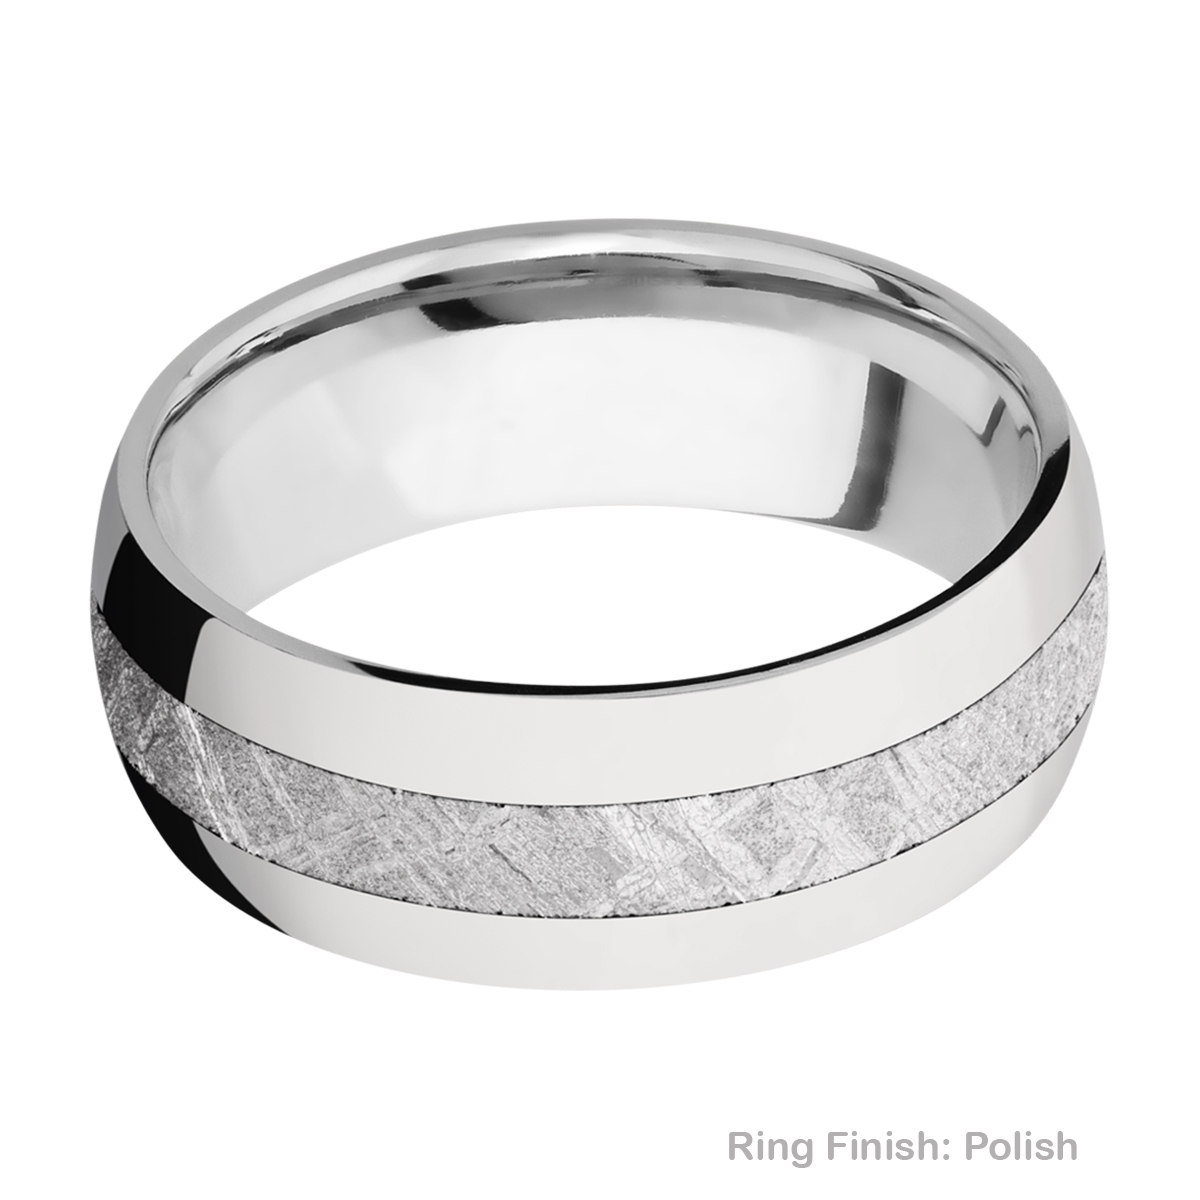 Lashbrook CC8D13/METEORITE Cobalt Chrome Wedding Ring or Band Alternative View 3